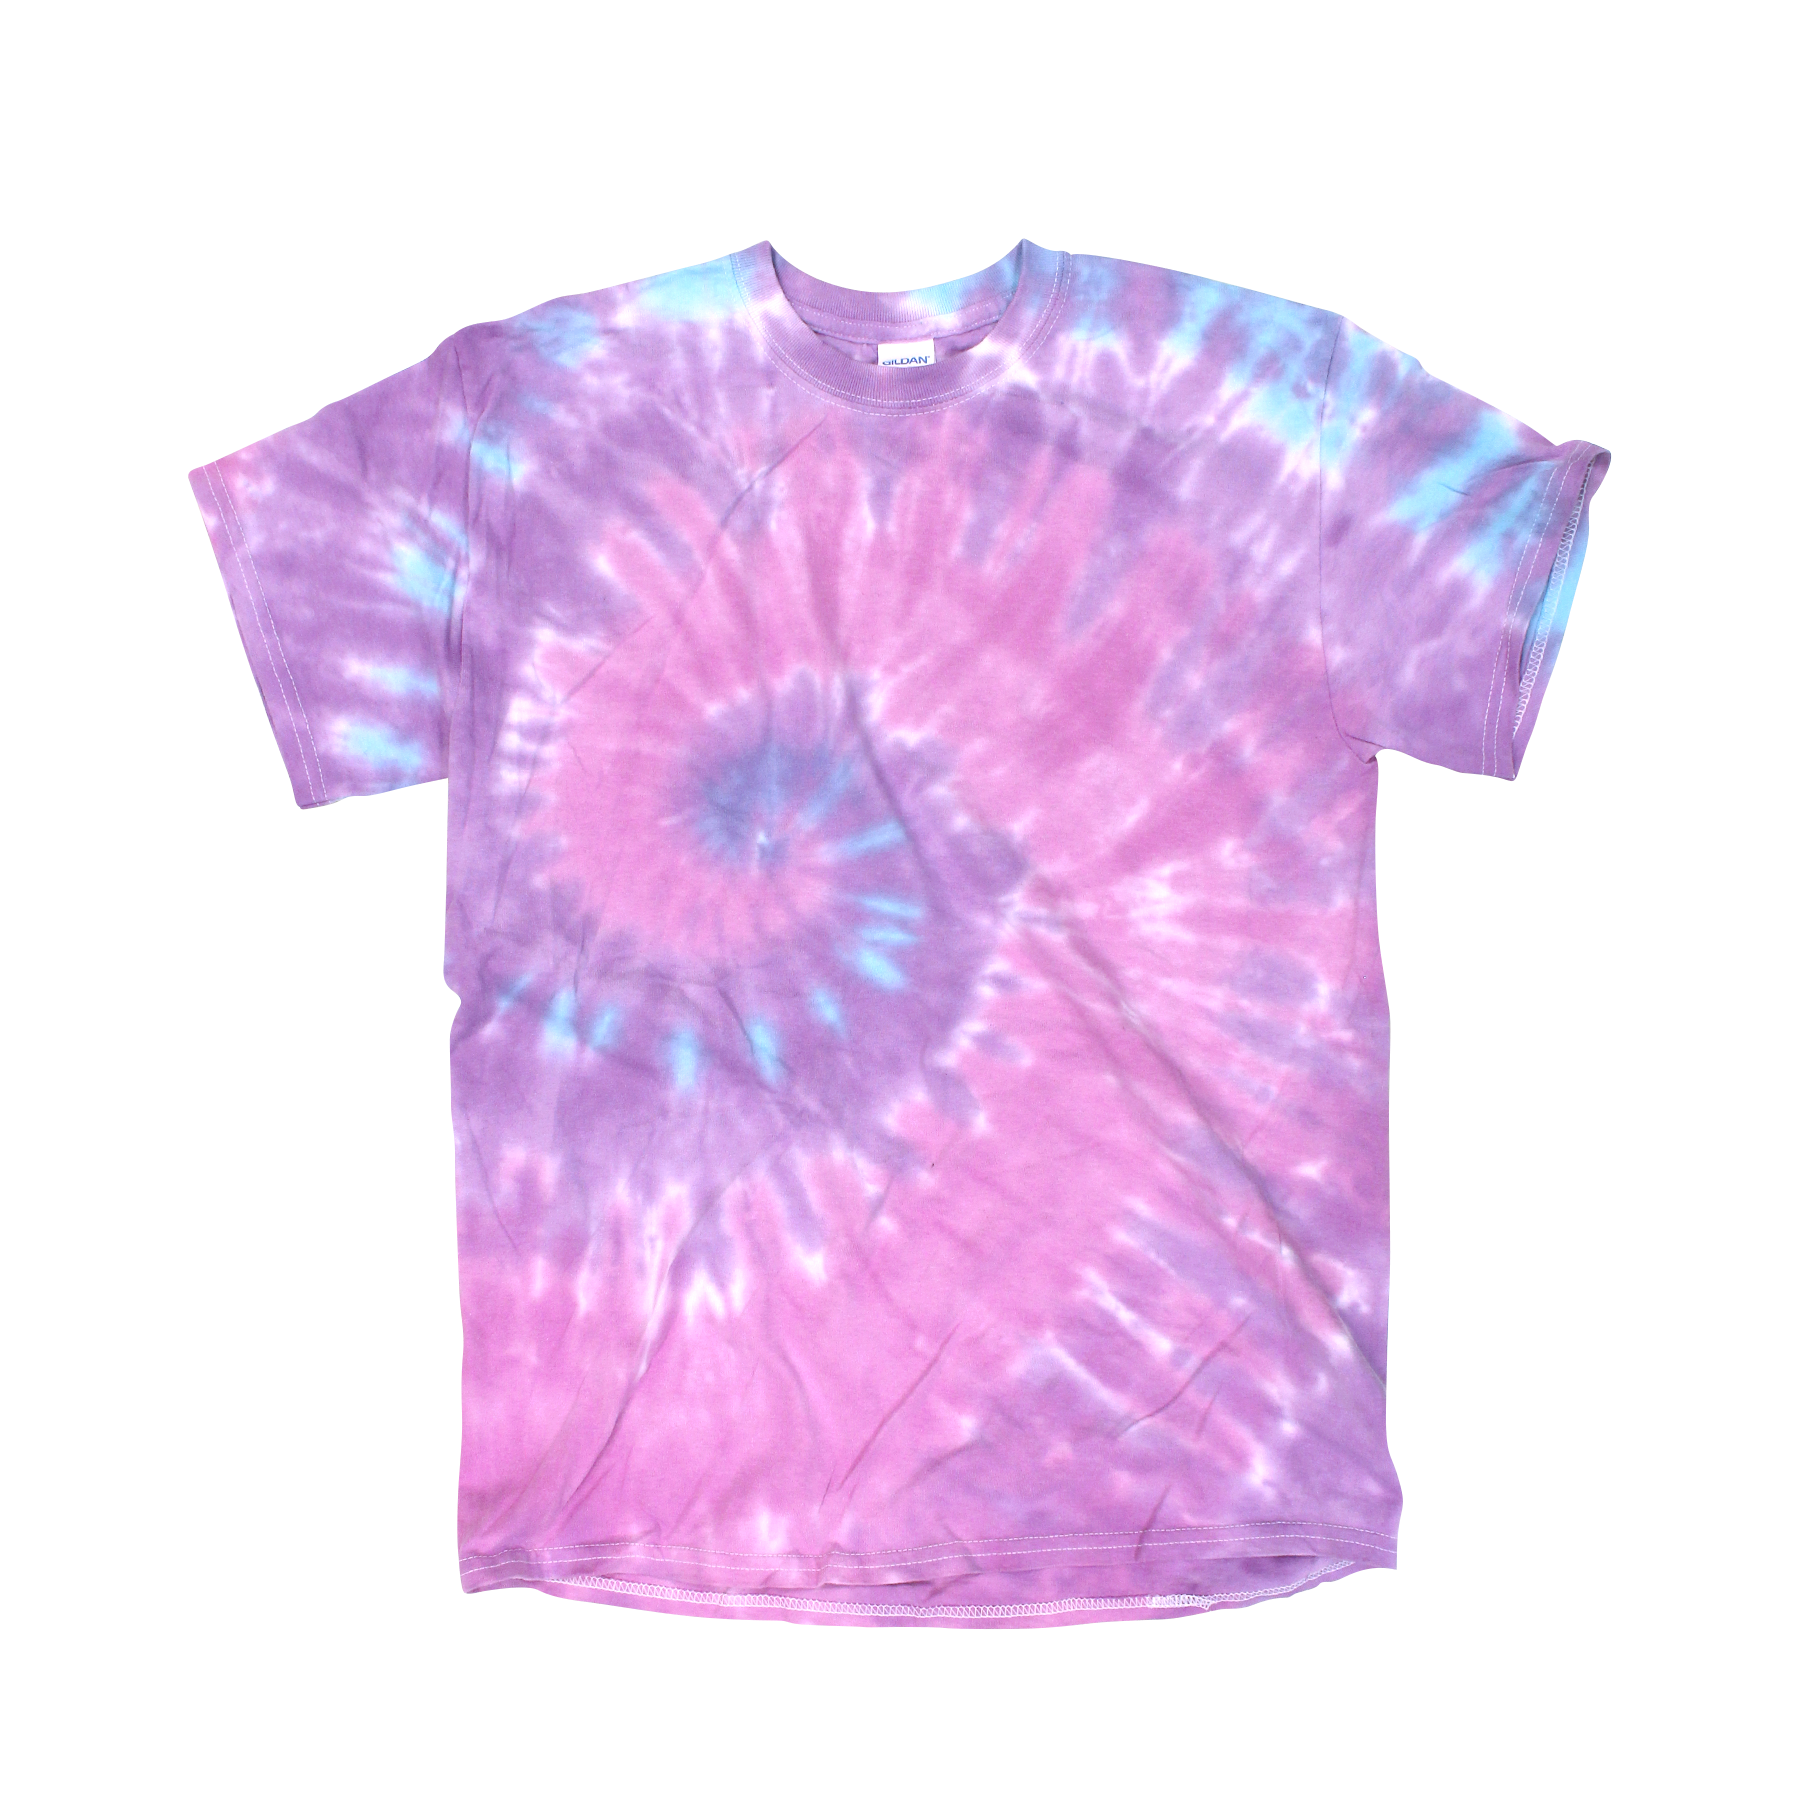 Gildan Tie Dye - Medium - Men's Clearance